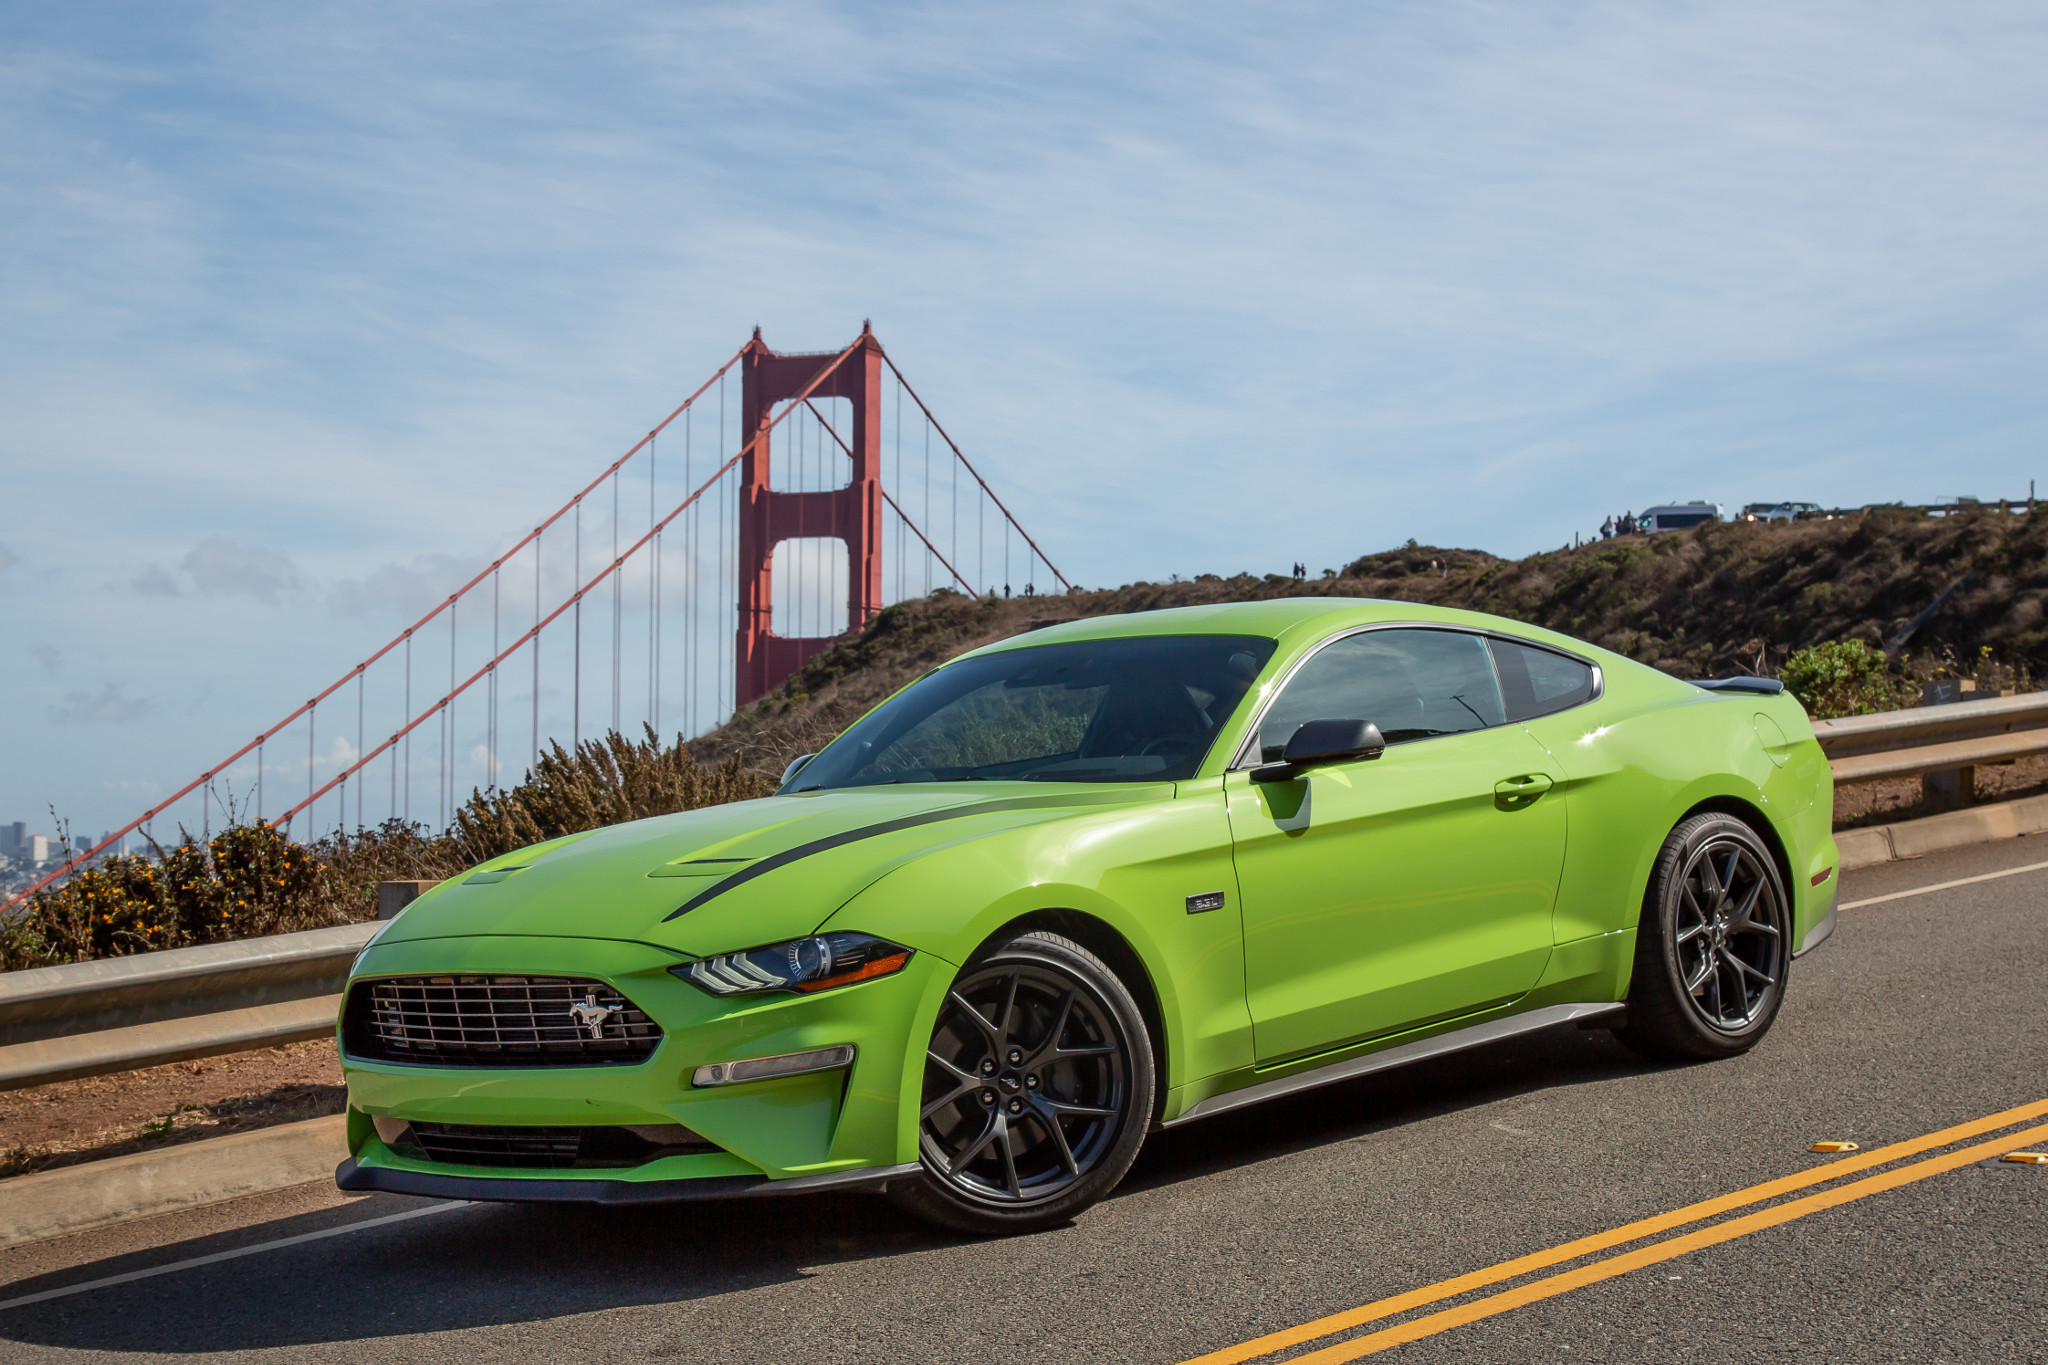 2020 Ford Mustang Review.2020 Ford Mustang Ecoboost High Performance Pack Review